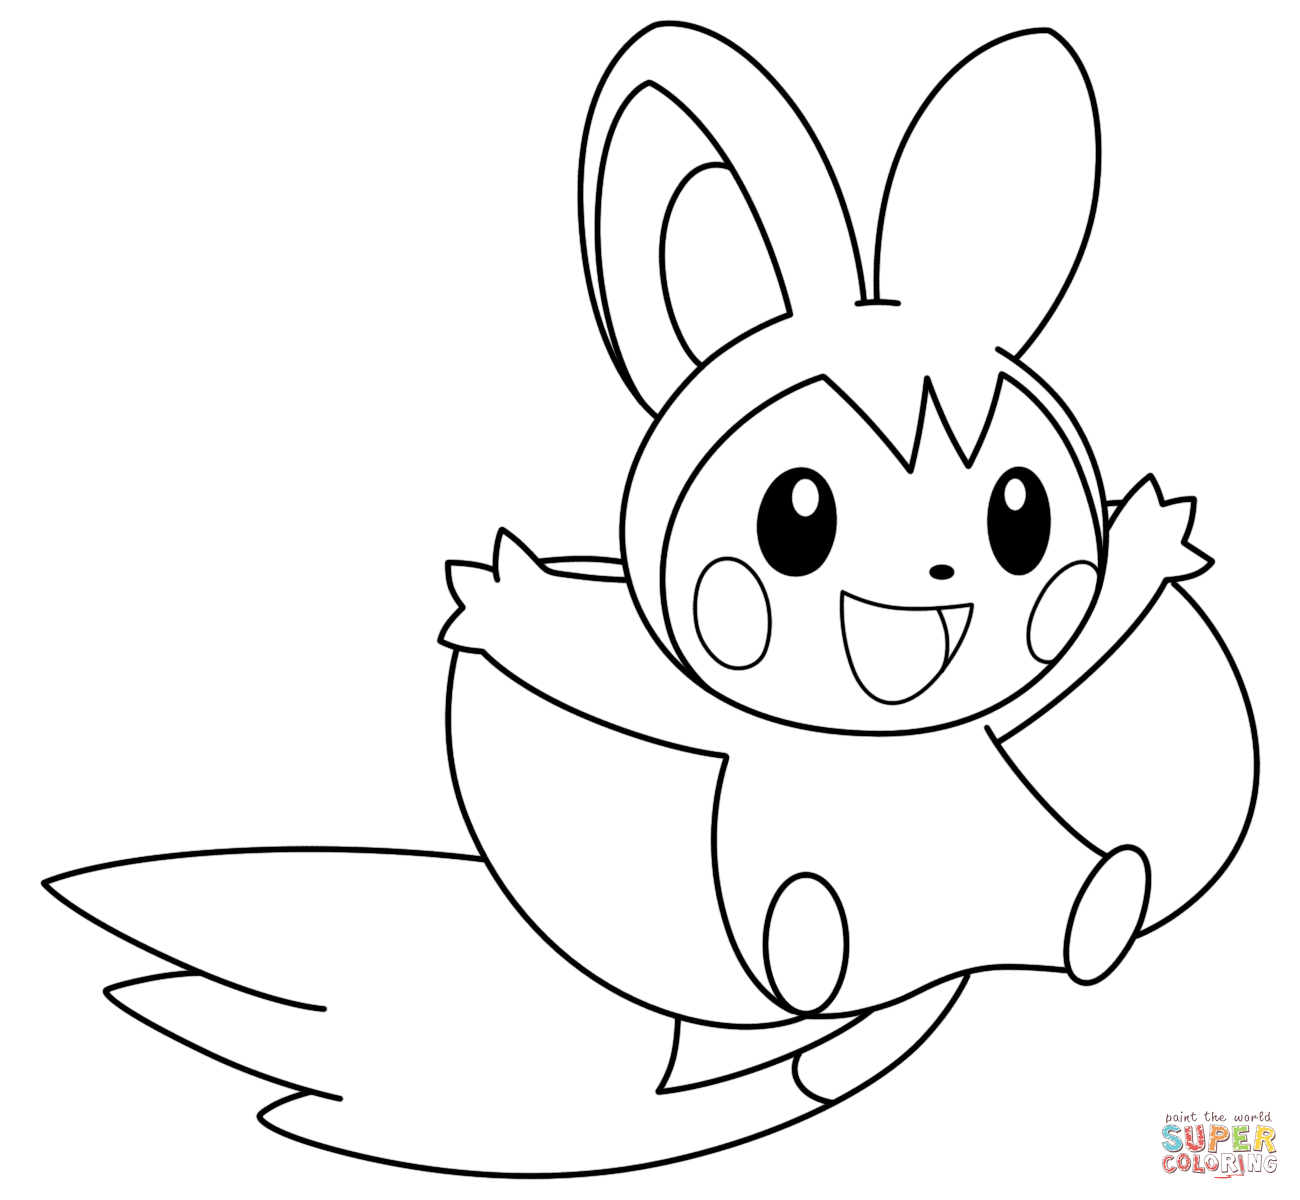 Excellent Image of Coloring Pages Of Pokemon